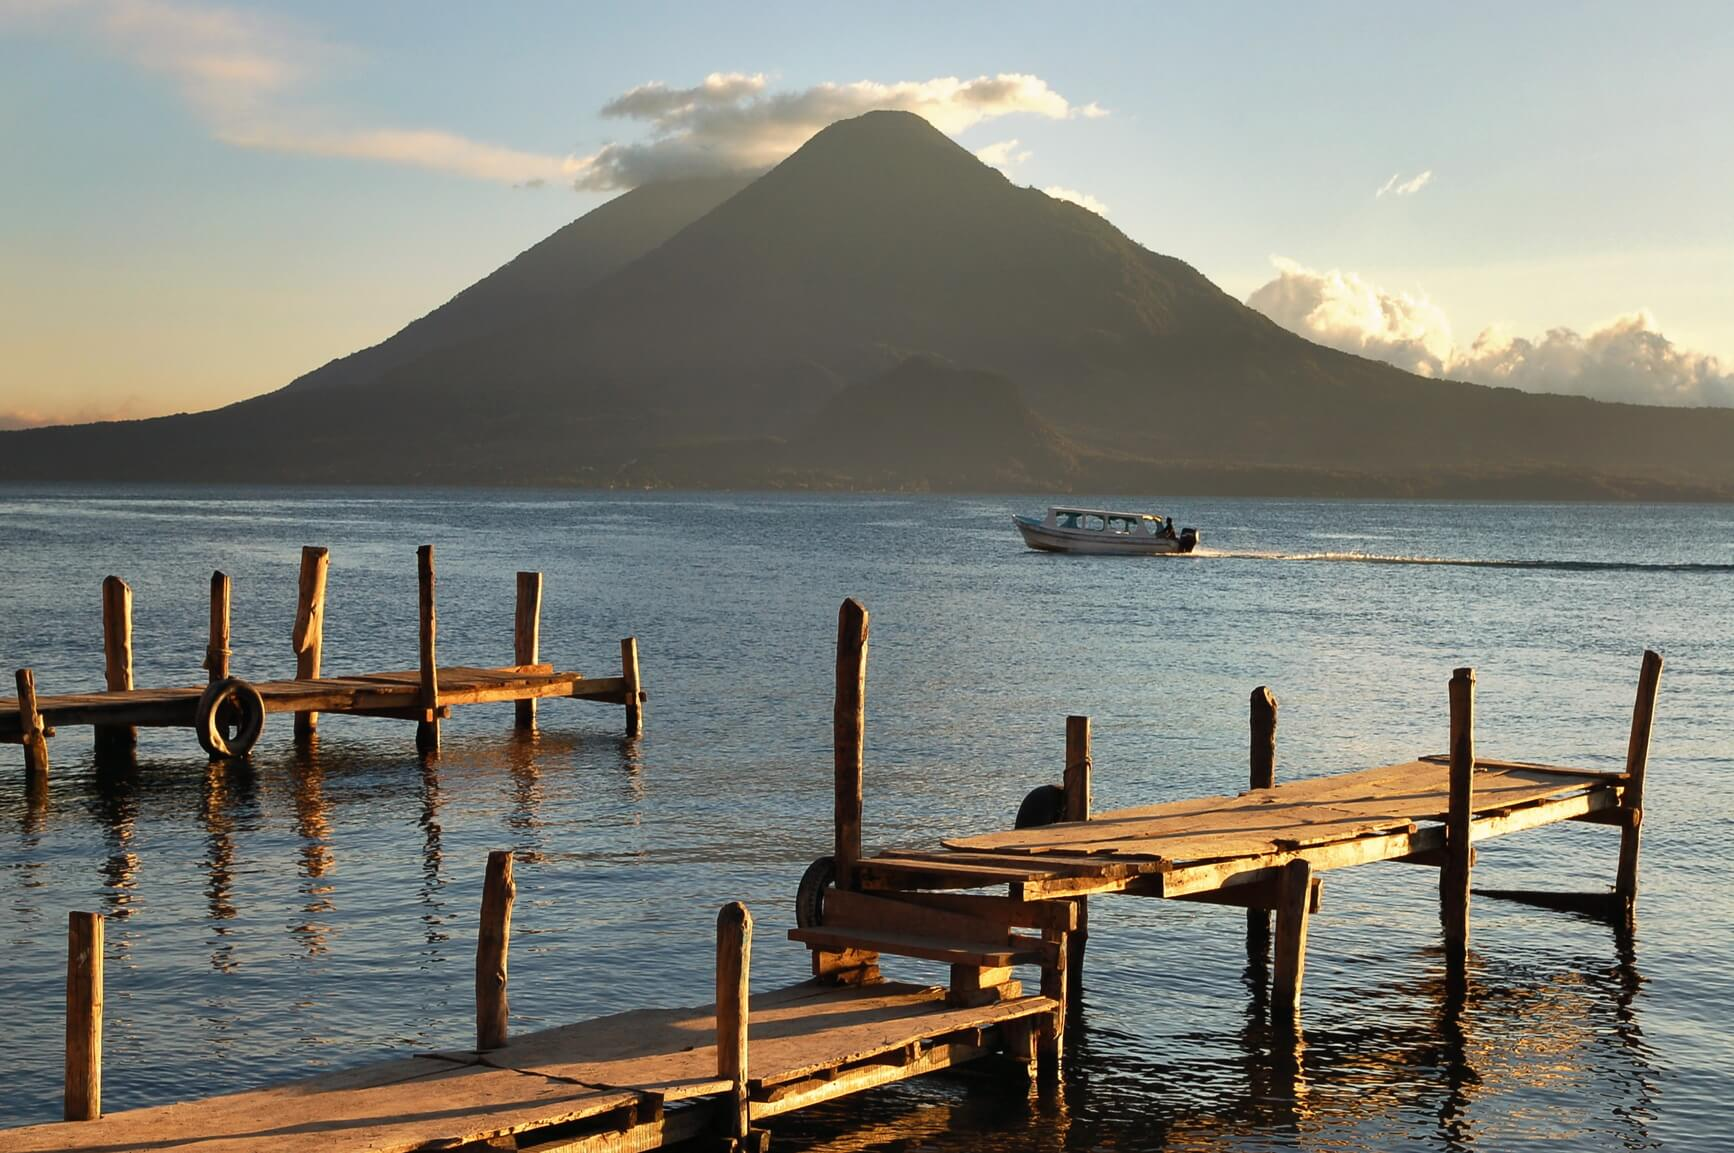 🔥 Fort Lauderdale to Guatemala City, Guatemala for only $140 roundtrip (Jan-Jun dates)